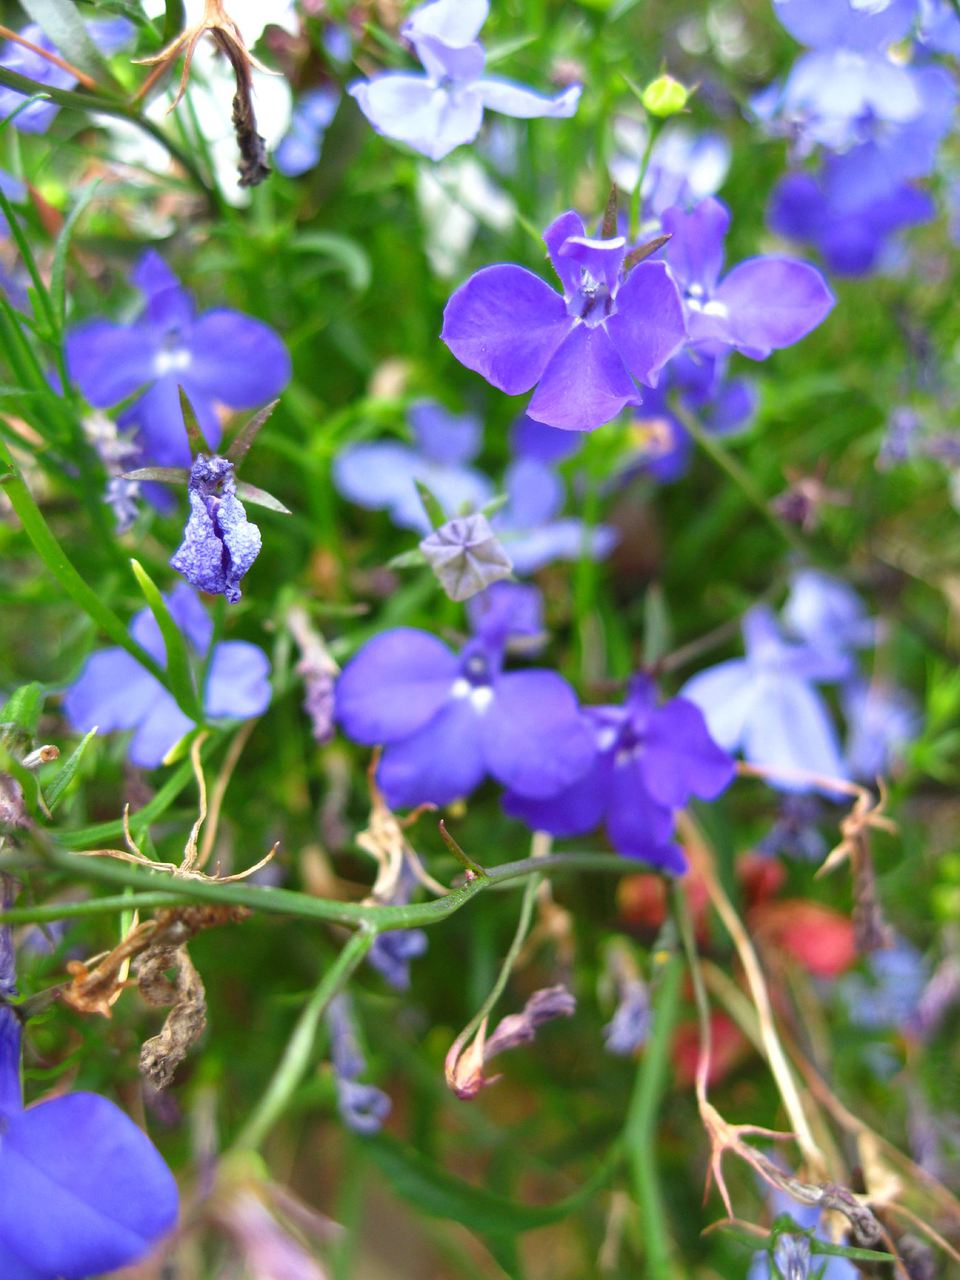 Spiller plant types and what they do the flowers of the lobelia a popular spiller plant paulmcdeecreative commons izmirmasajfo